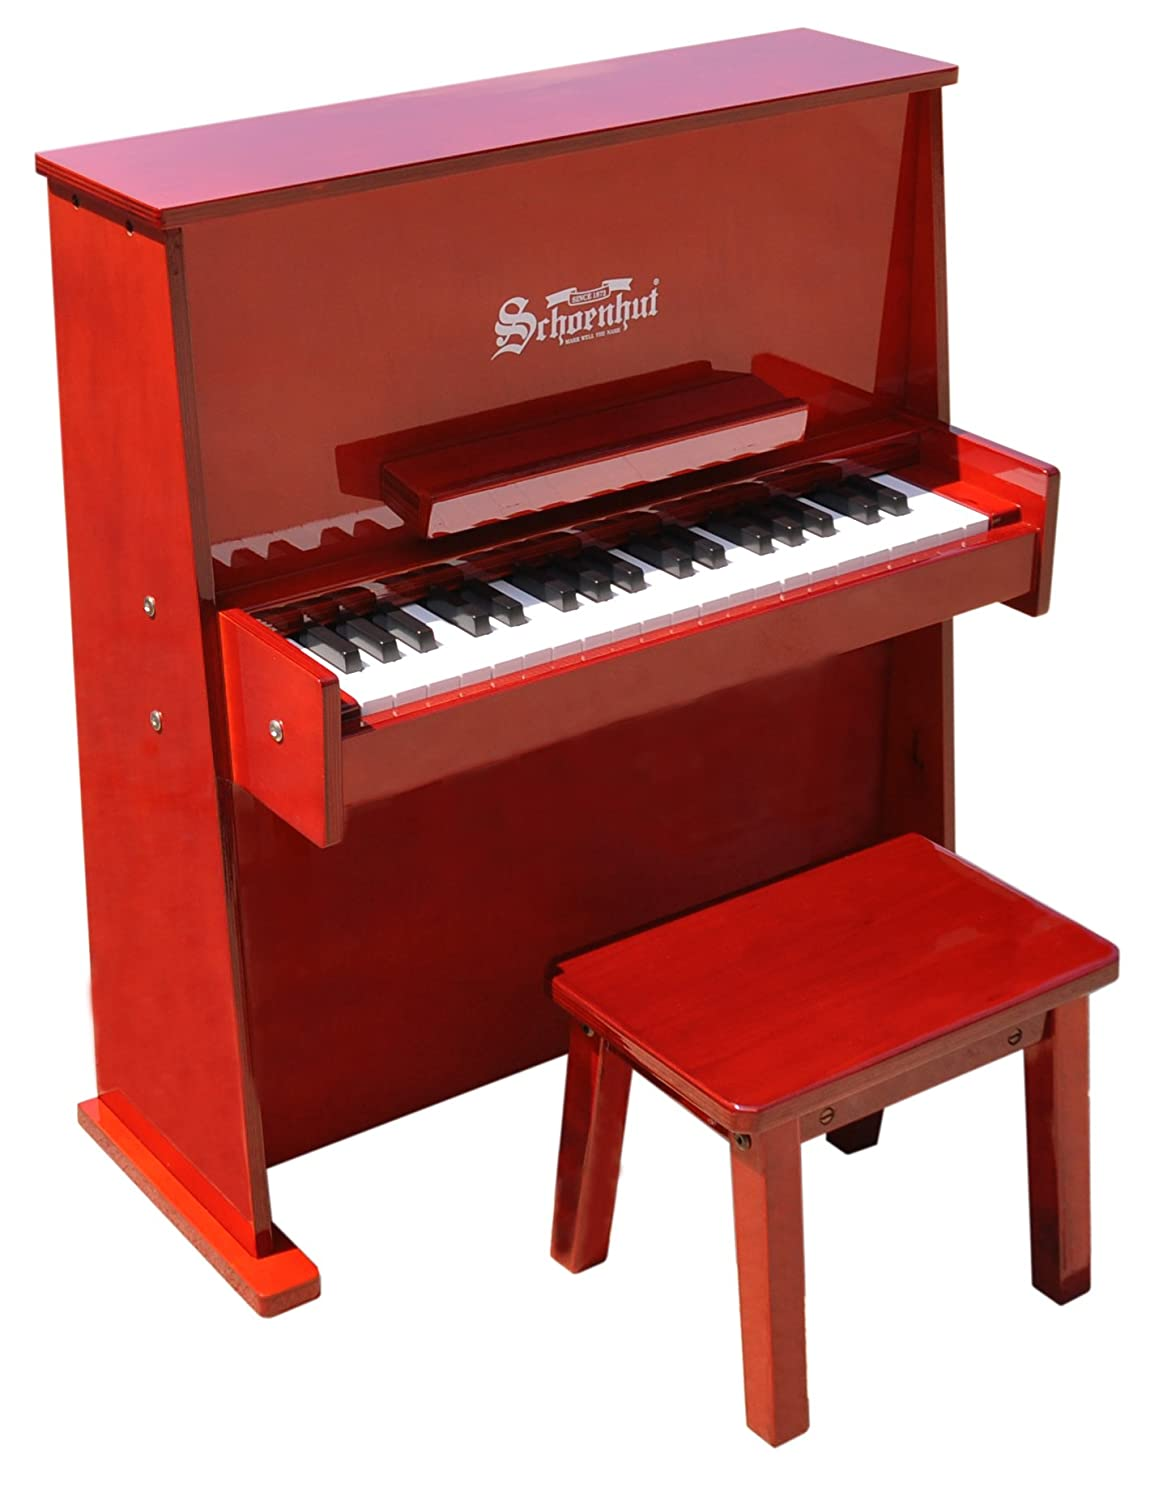 Top 8 Best Upright Pianos Reviews in 2020 3